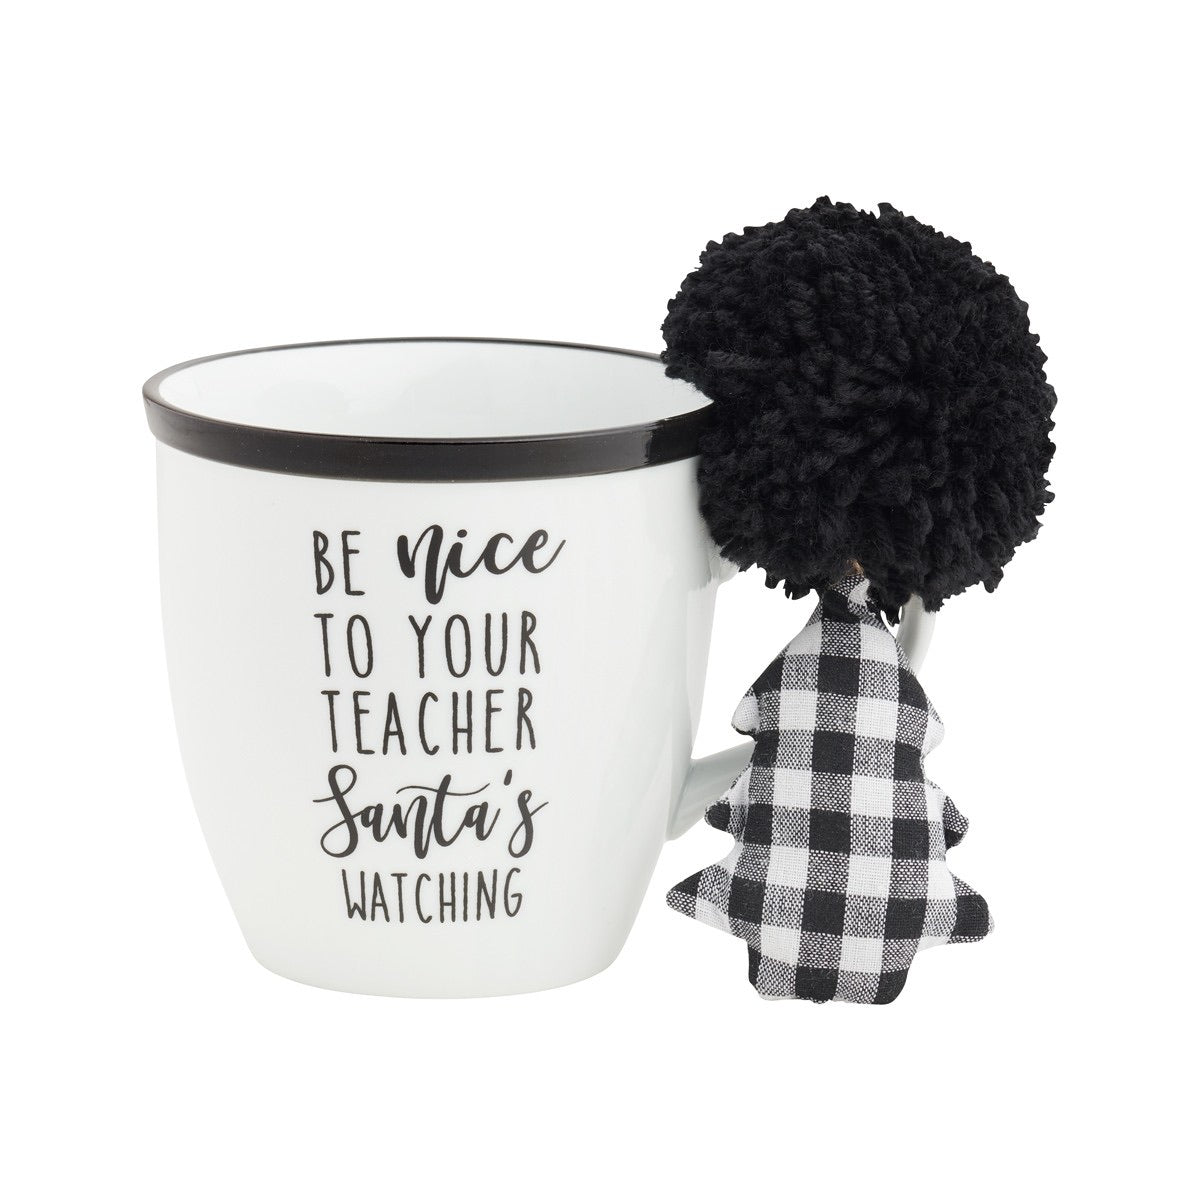 Be Nice to Your Teacher... Christmas Mug & Ornament Gift Set